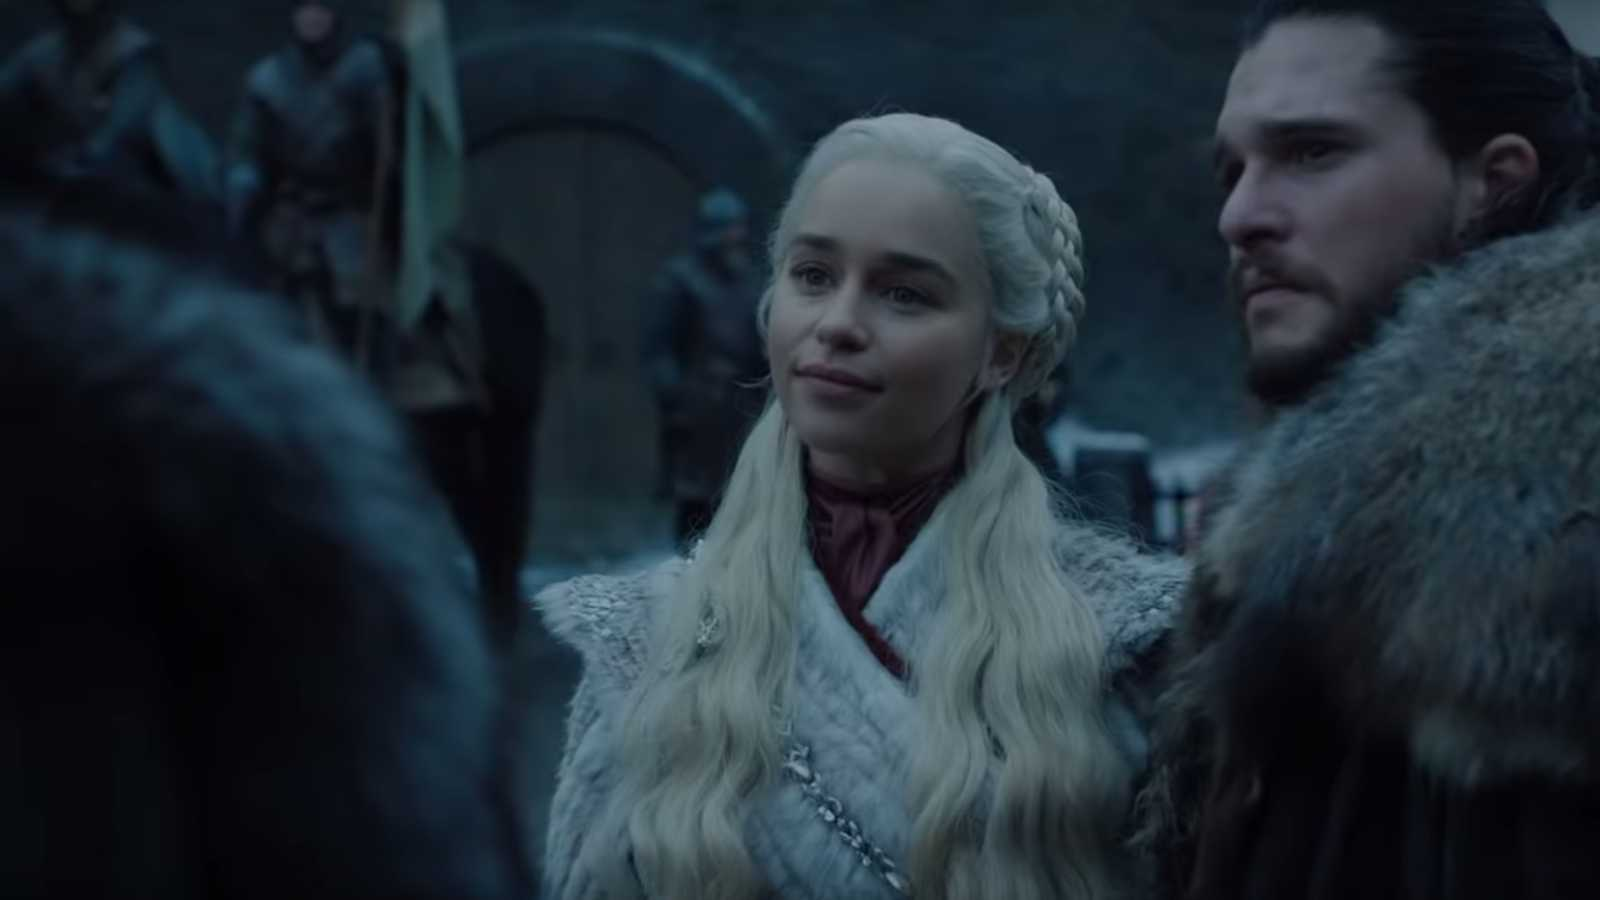 Game Of Thrones' final season will begin on April 14